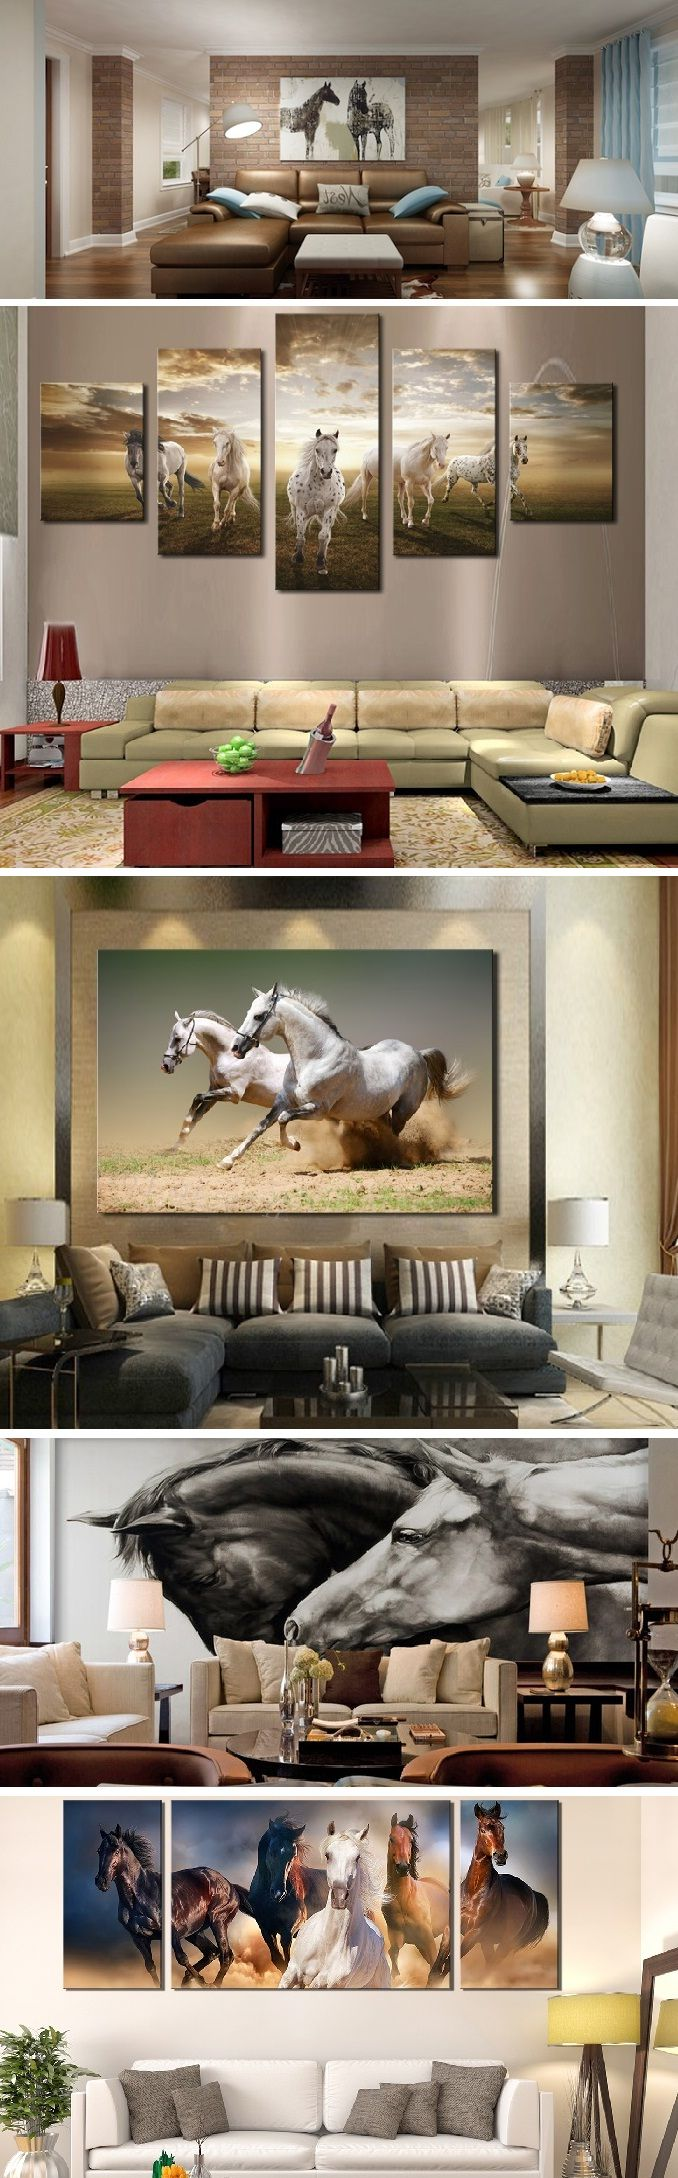 Home Interiors Horse Pictures